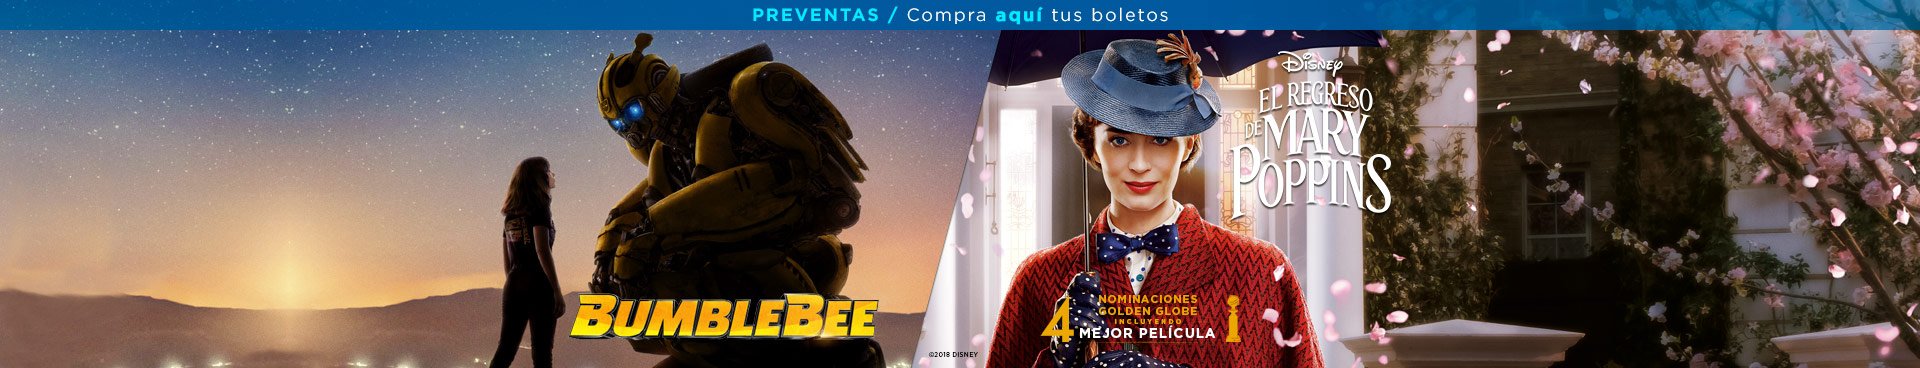 Preventas (Aquaman/ Mary Poppins)